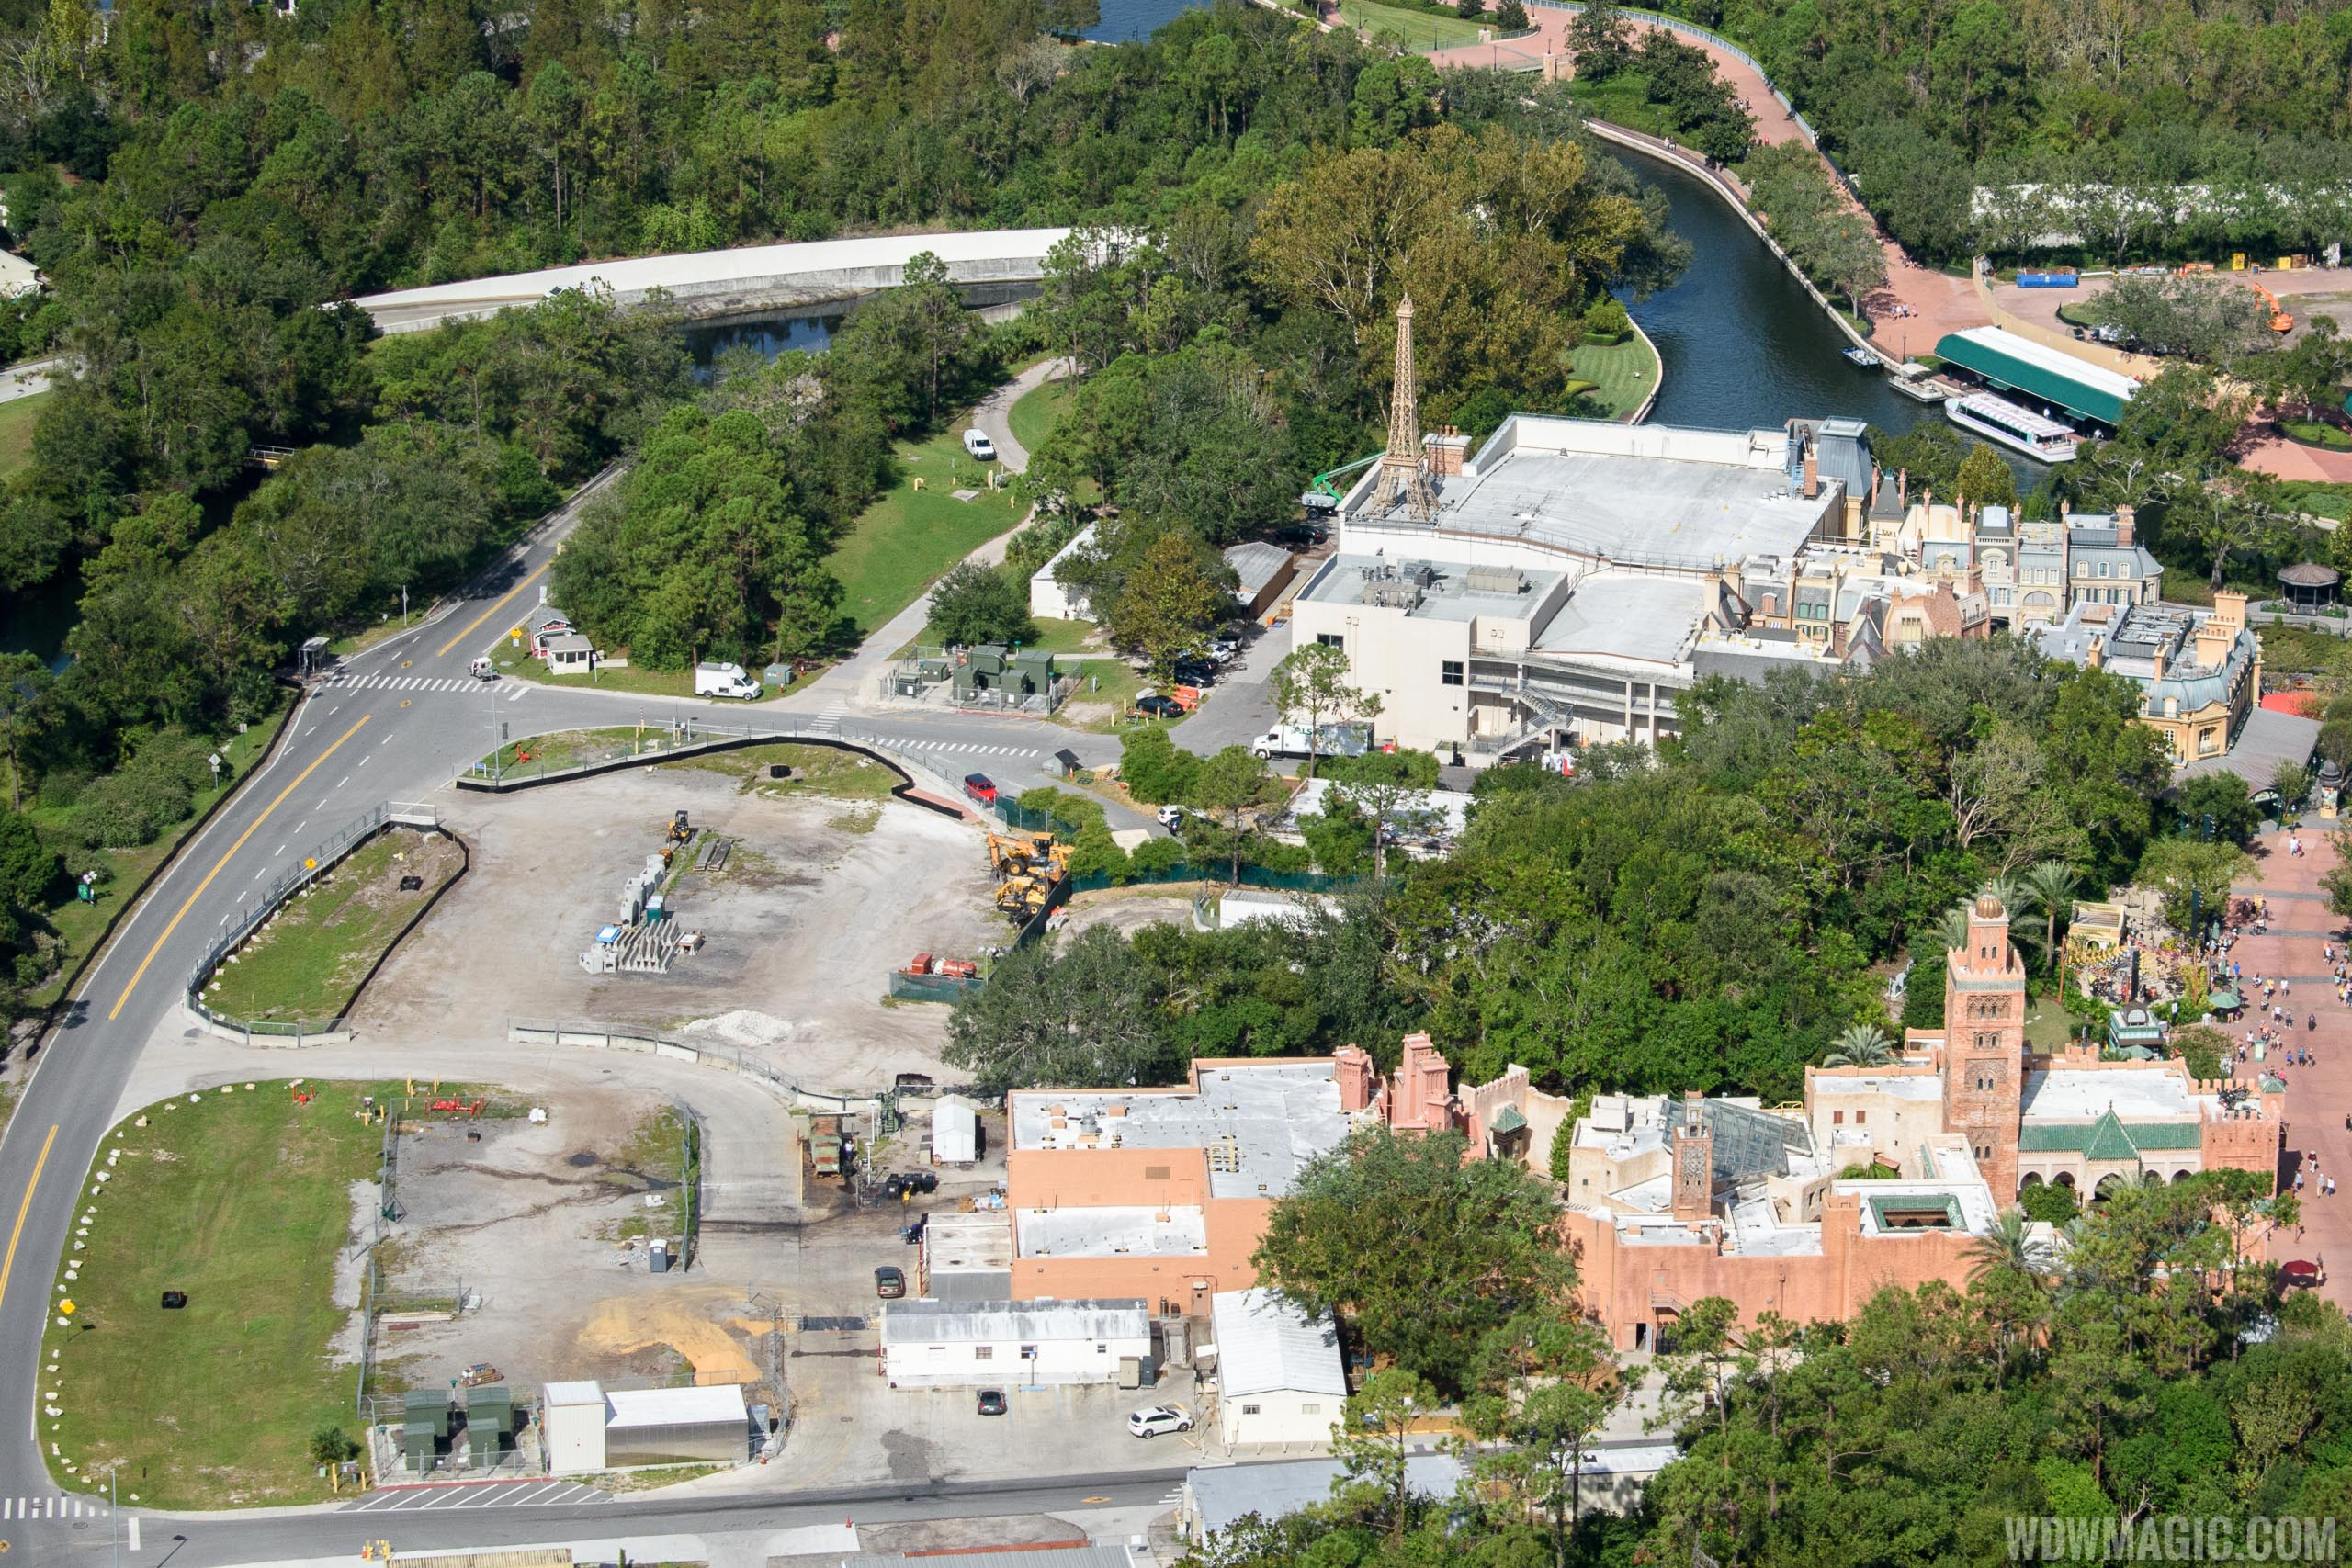 Ratatouille construction site from the air